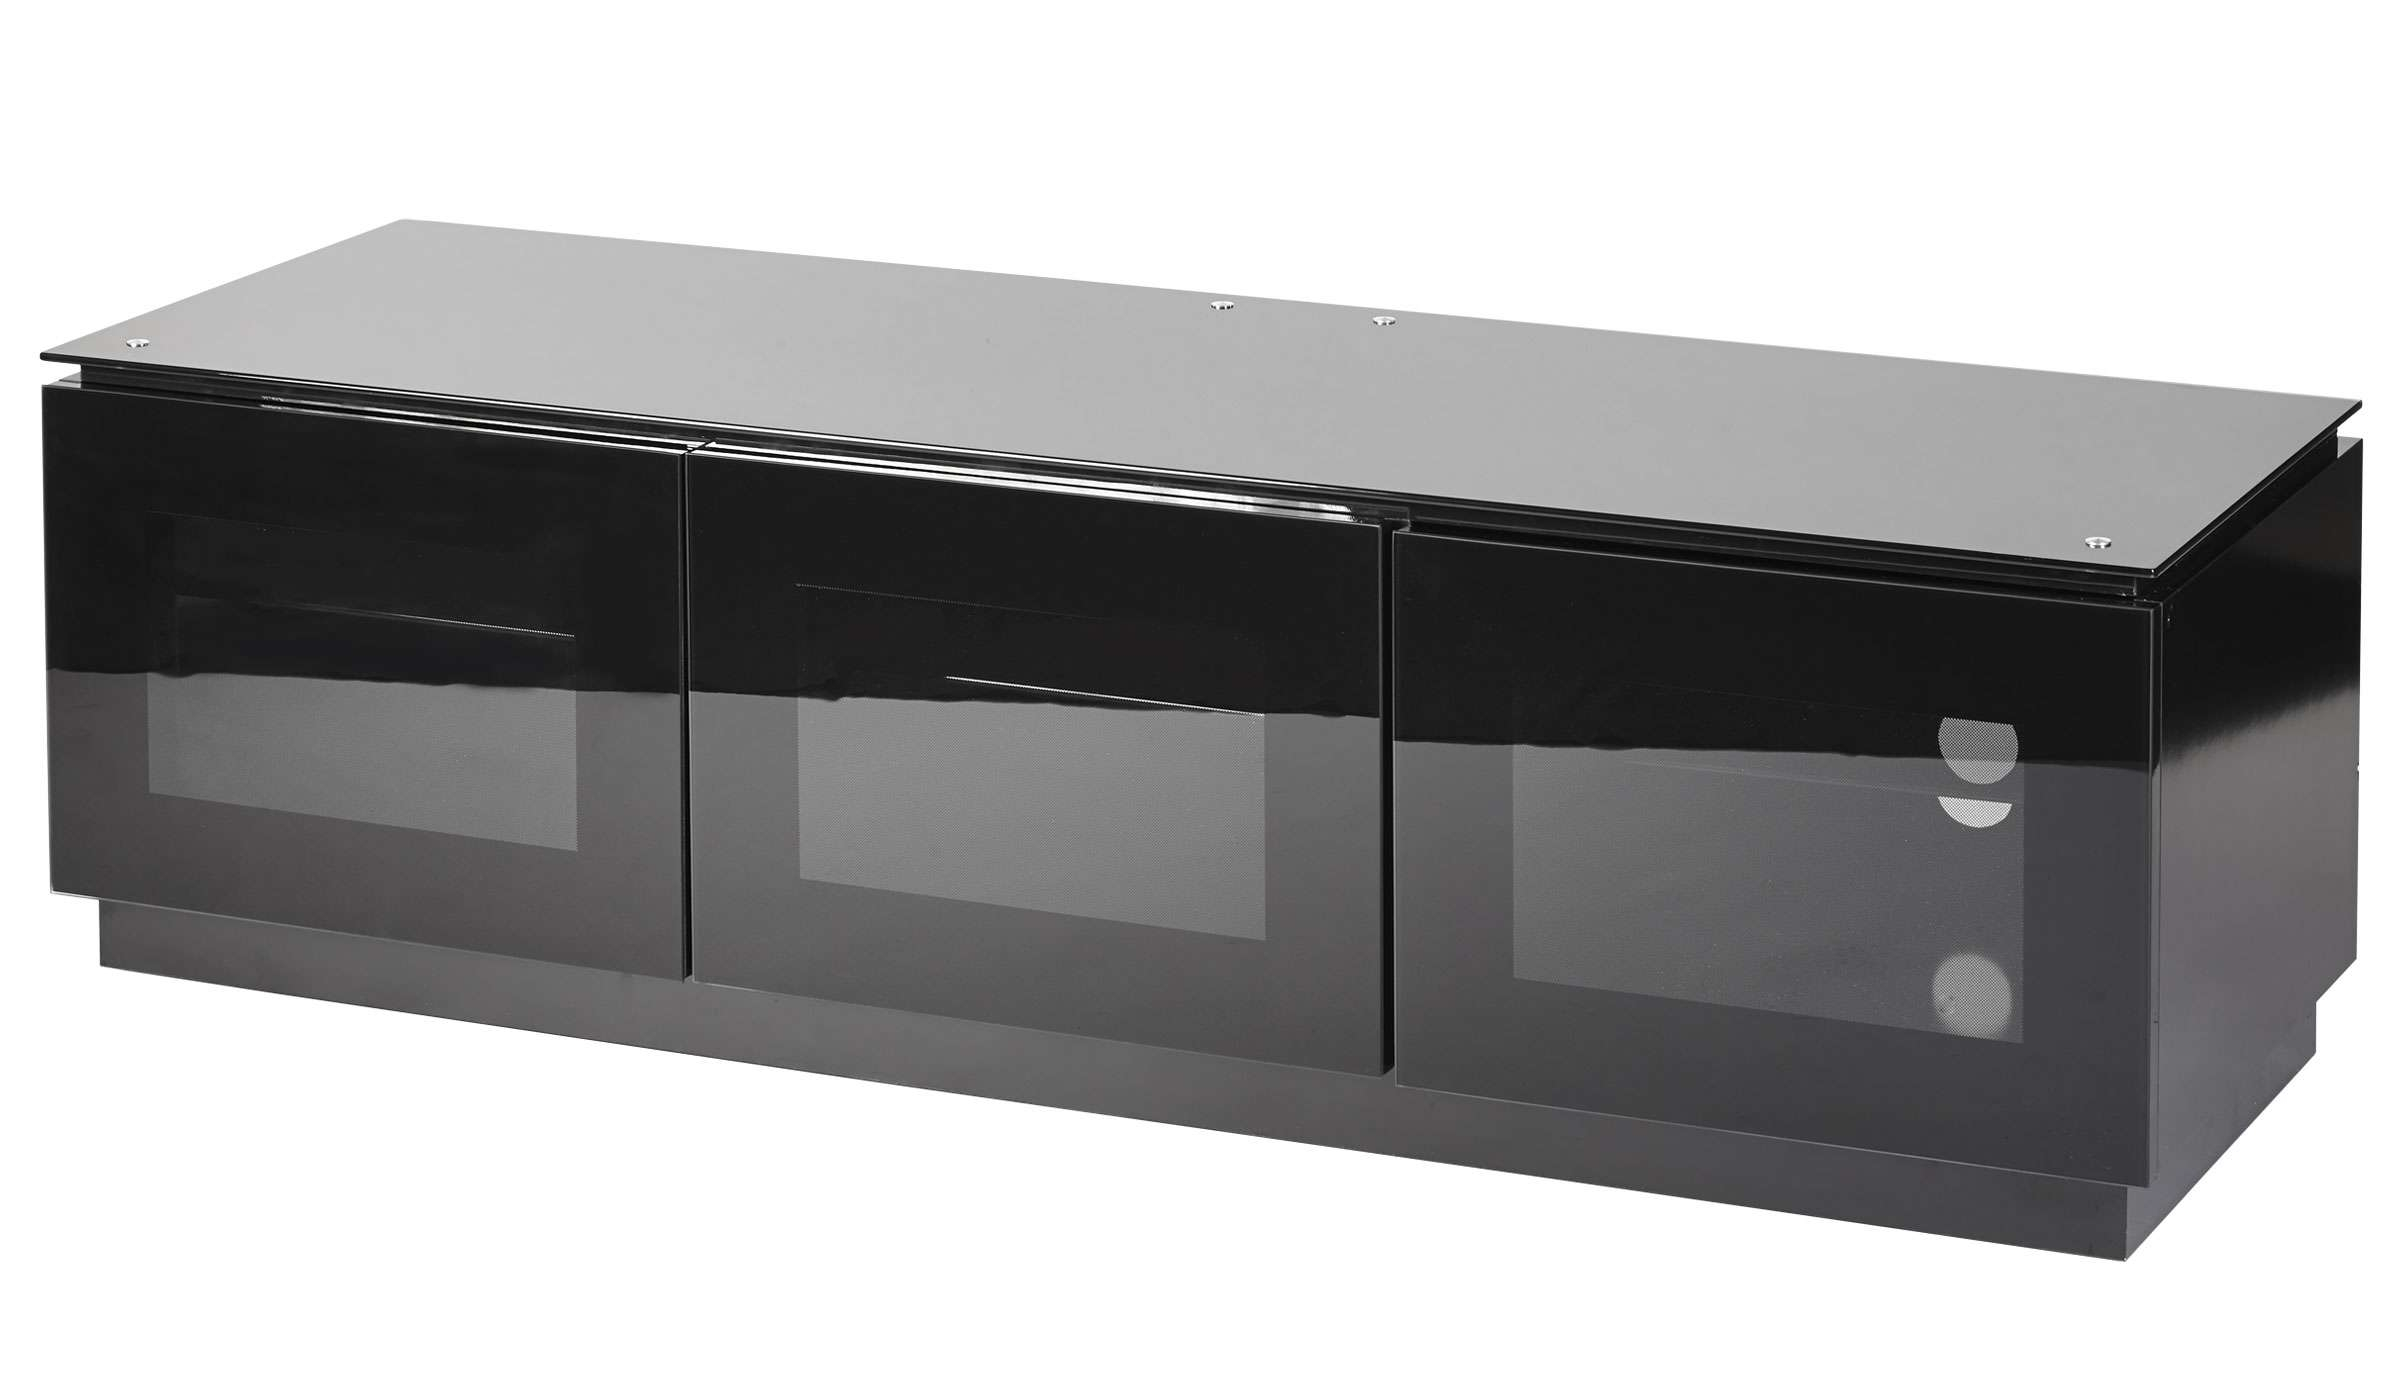 Black Gloss Tv Unit Up To 65 Inch Flat Tv | Mmt D1500 Throughout Black Tv Cabinets With Doors (View 3 of 20)